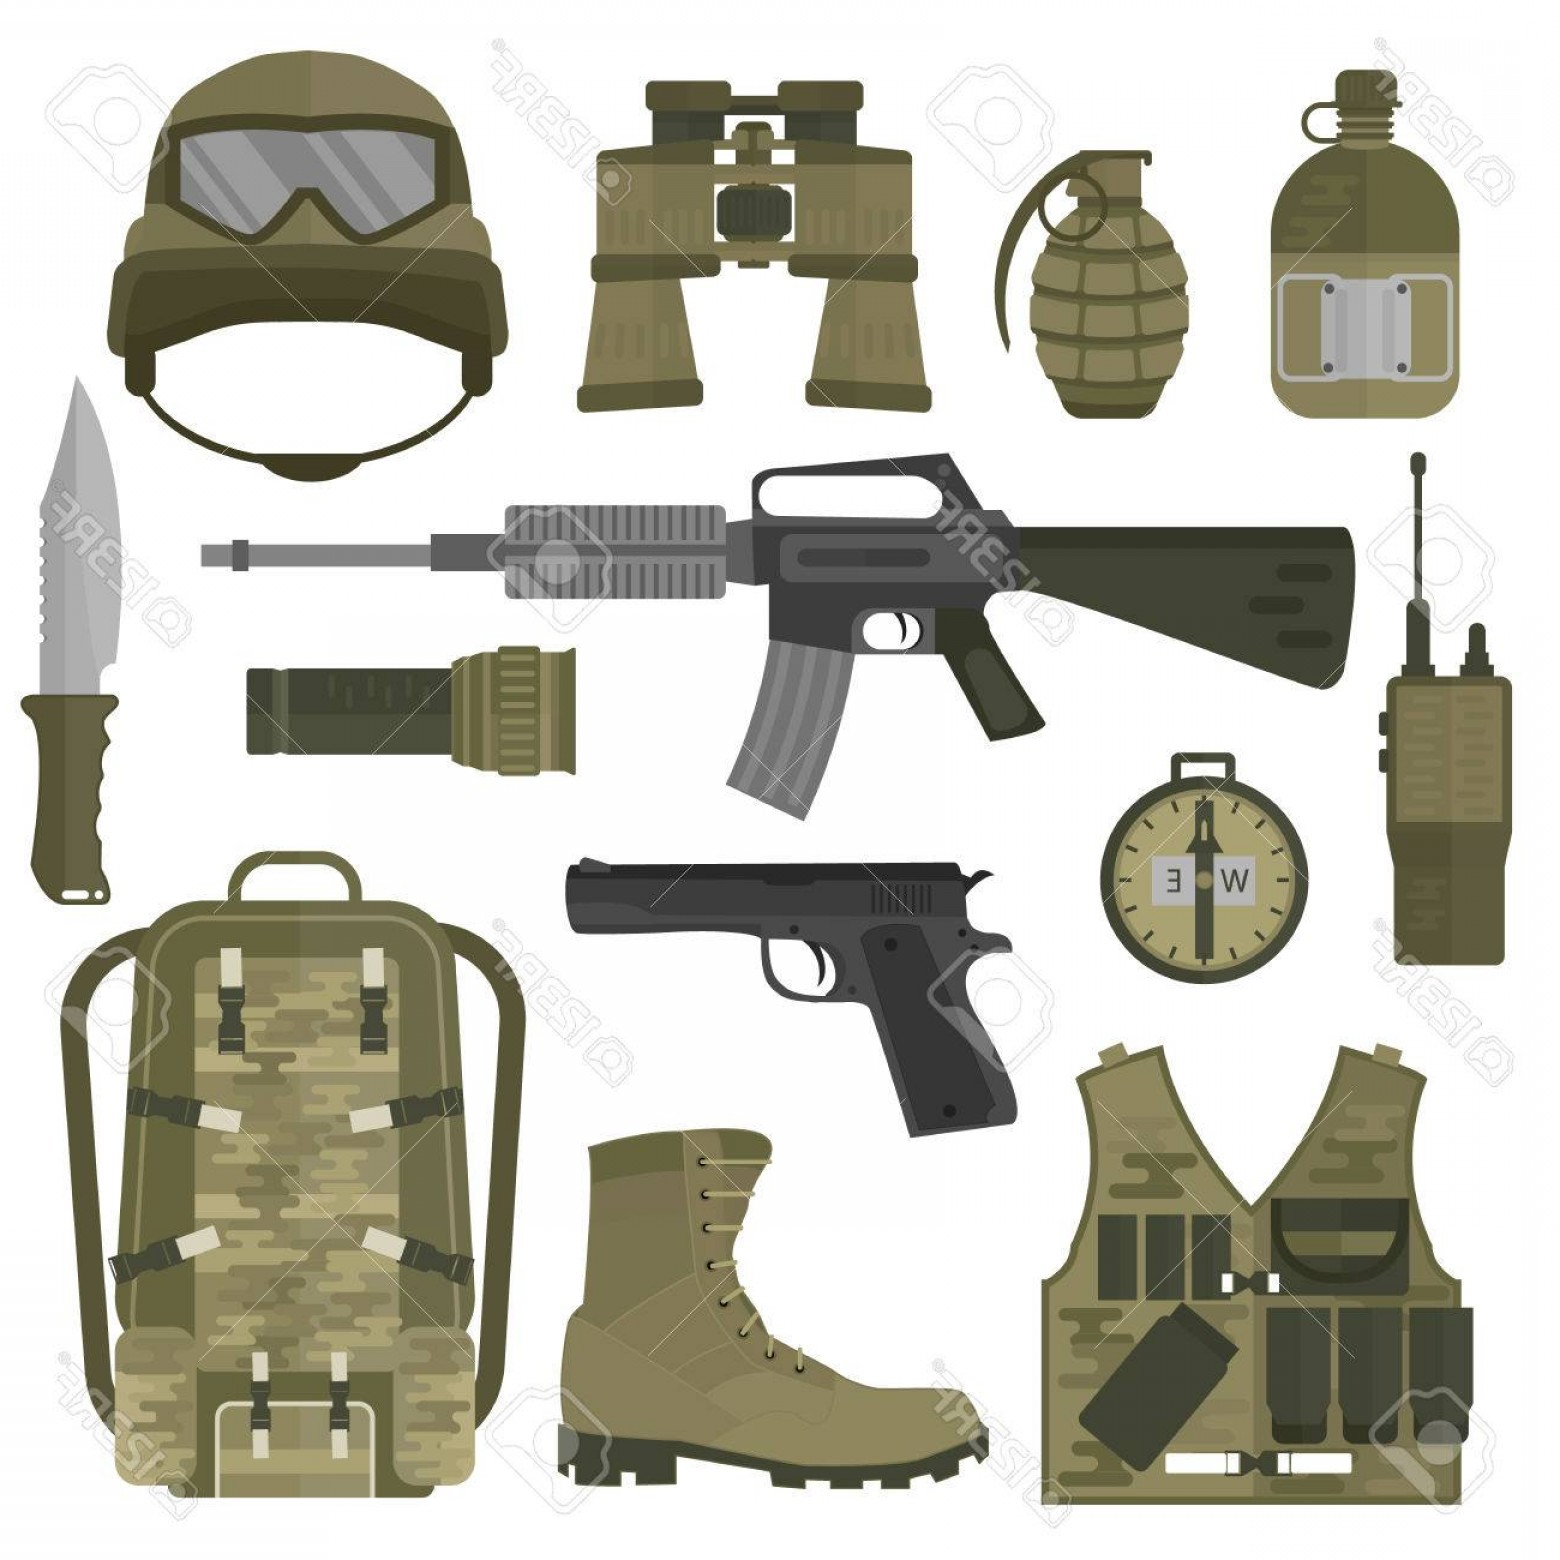 Nato Assault Rifles Vector Graphics: Photostock Vector Usa Or Nato Troop Military Army Symbols Vector Illustration Usa Or Nato Troop Military Army Symbols